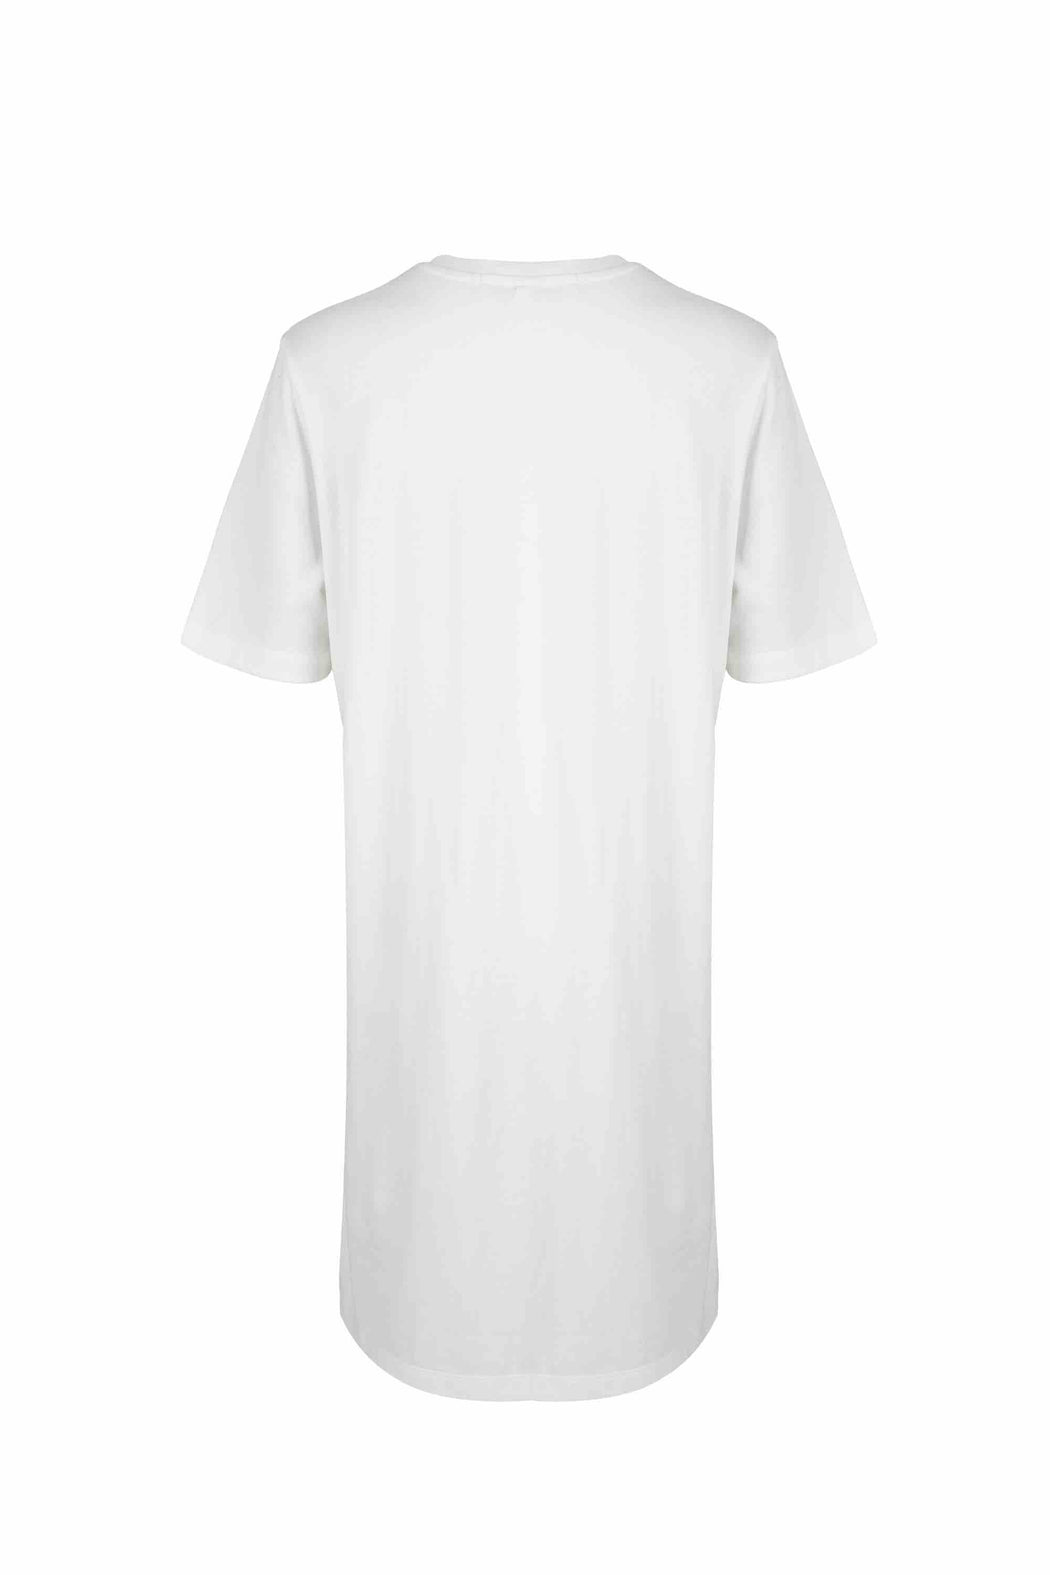 Back view of Women Side Slit Long T-Shirt, made with Organic cotton in White